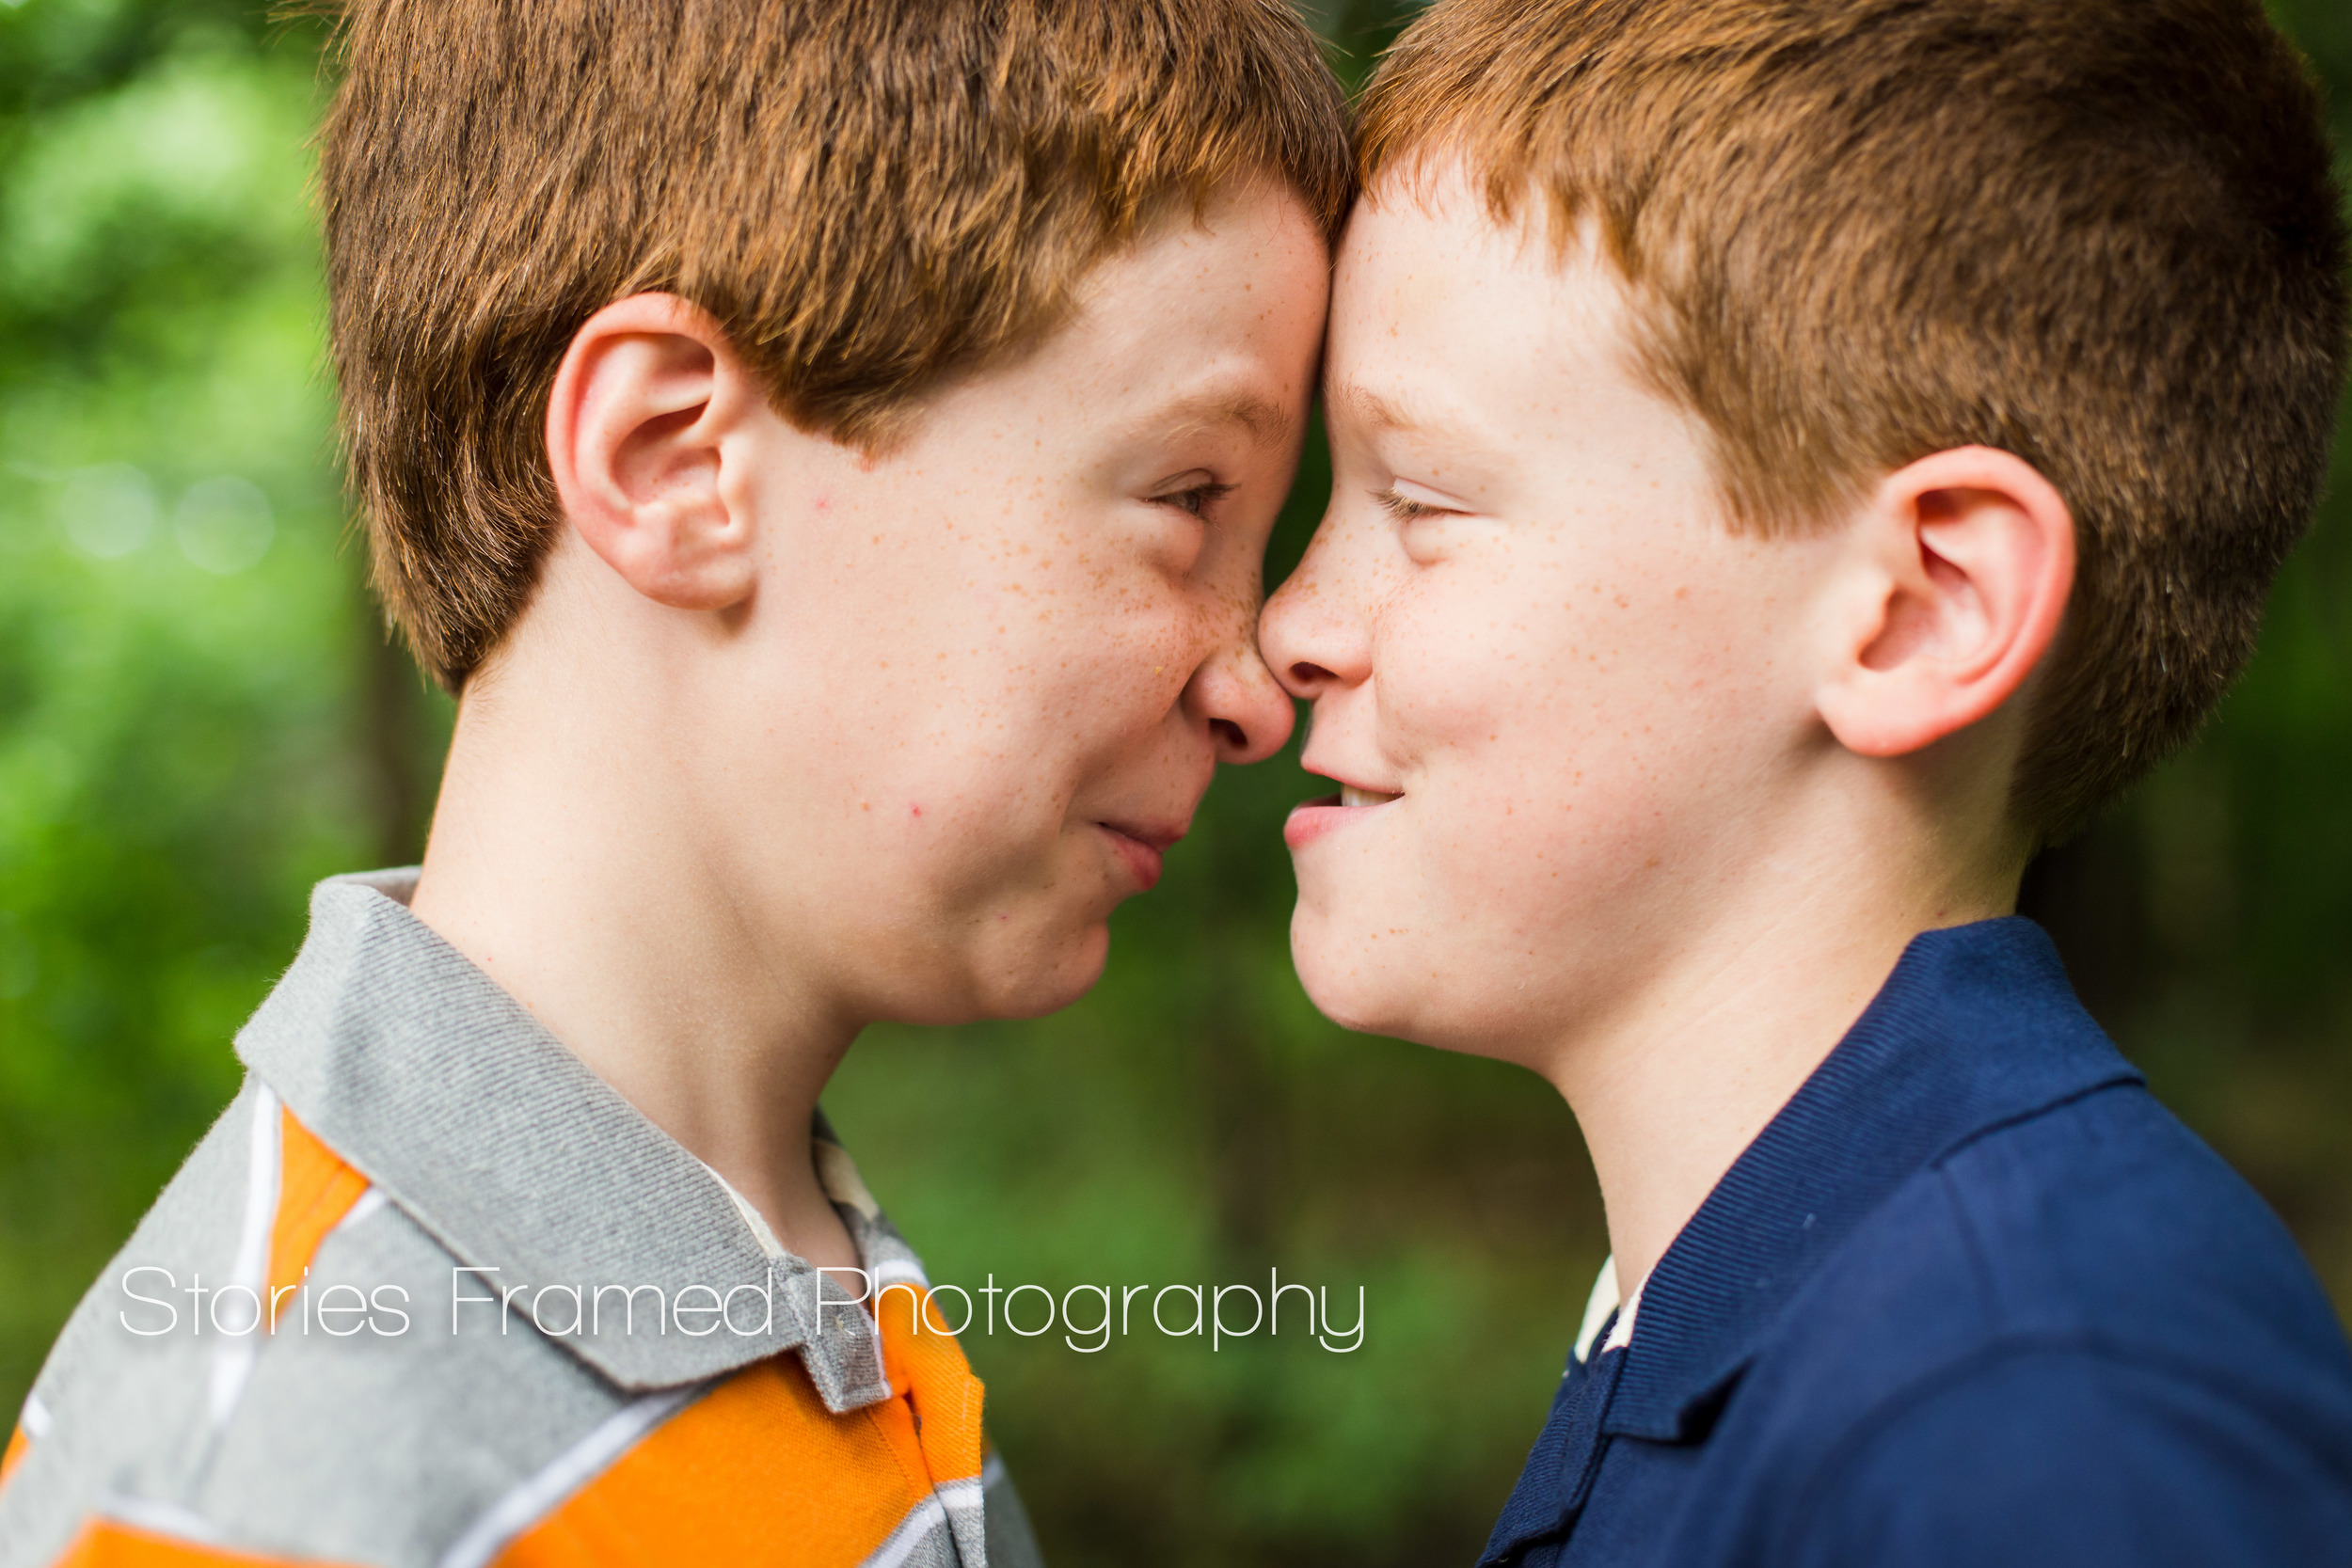 Stories Framed Photography | redheaded twins